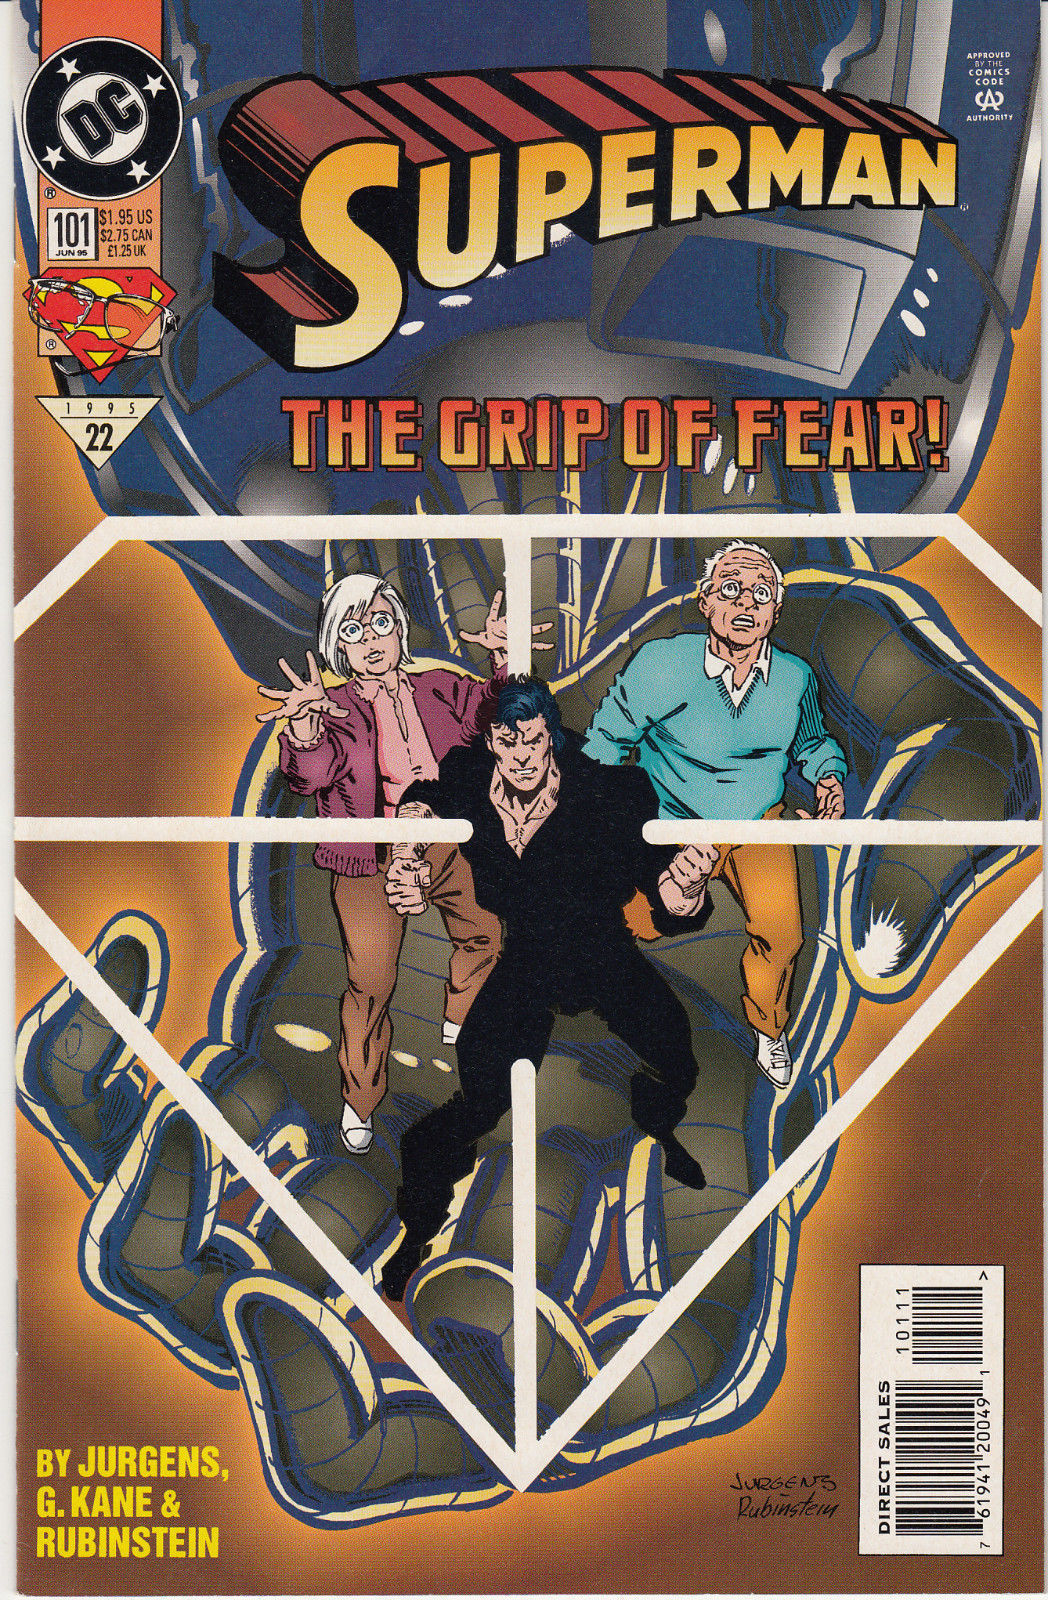 1995 DC Comics Superman The Grip of Fear #101